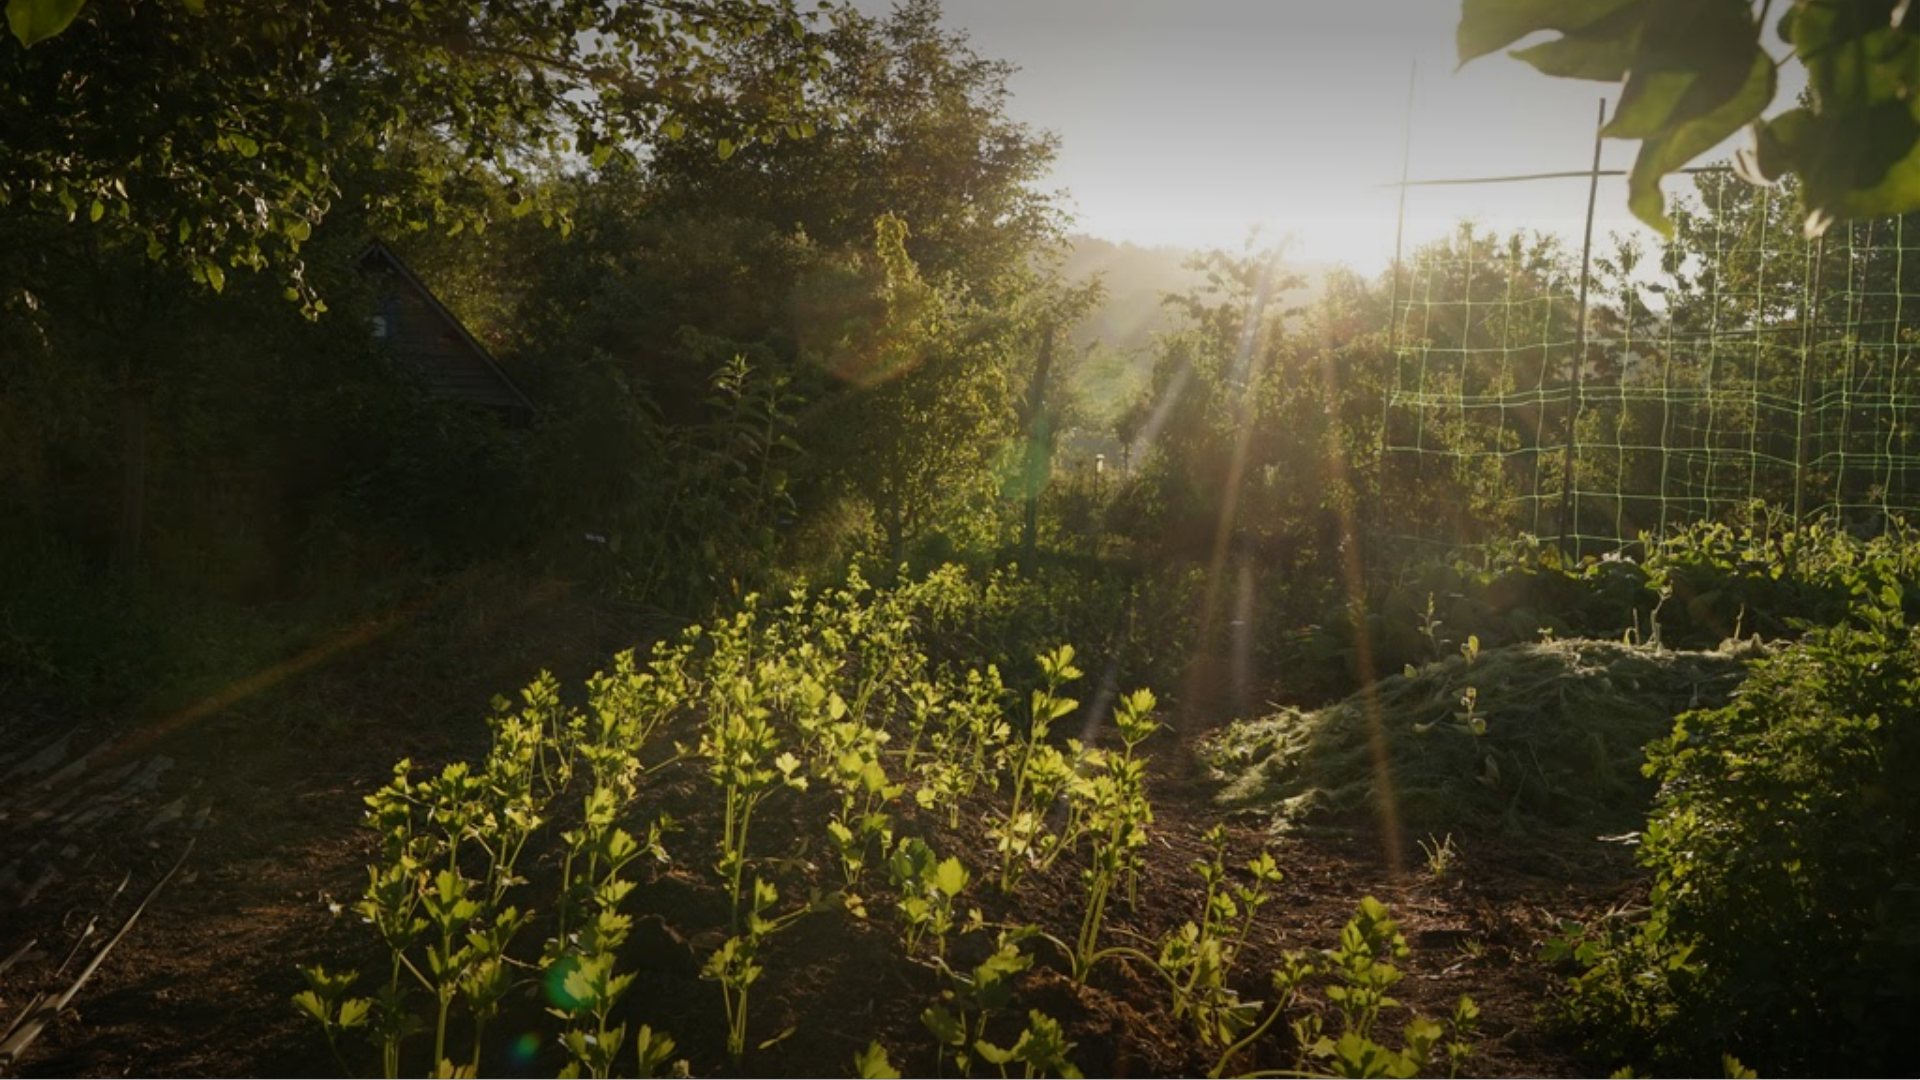 In the heart of the county of Eure: an inspiring organic farm